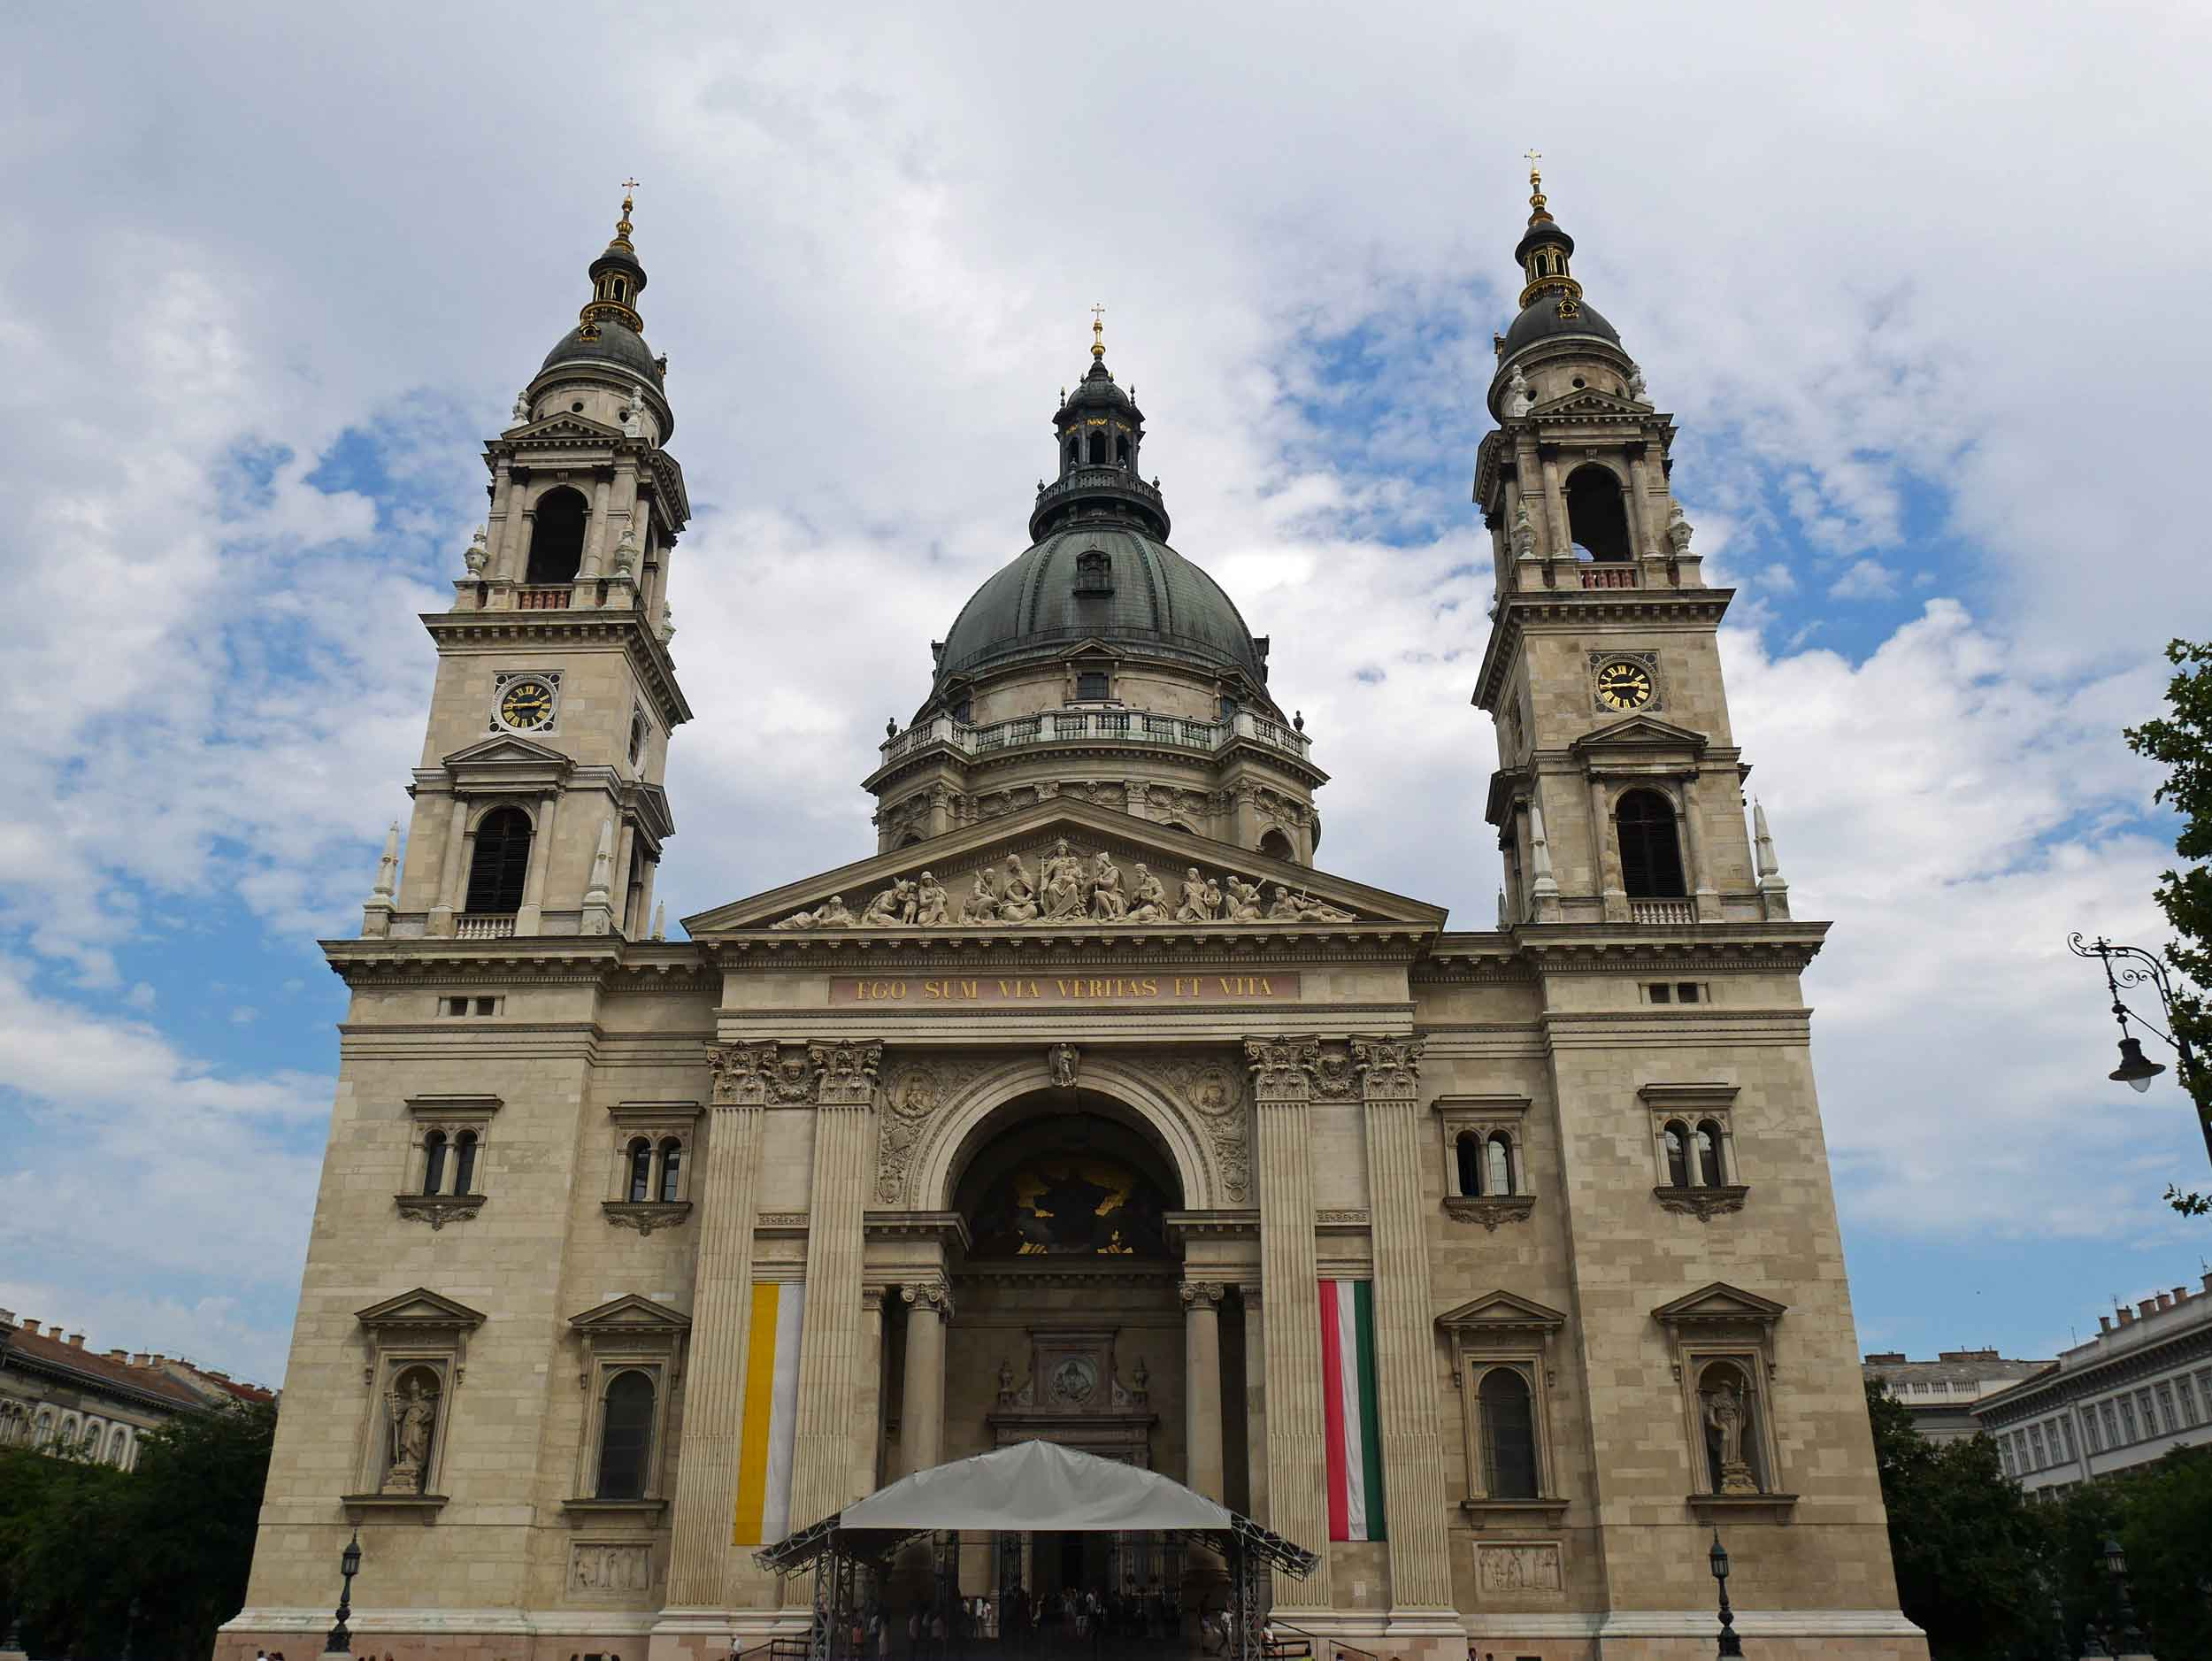 The famous St. Stephen's Basilica is named for the country's first king and supposedly houses his right hand.